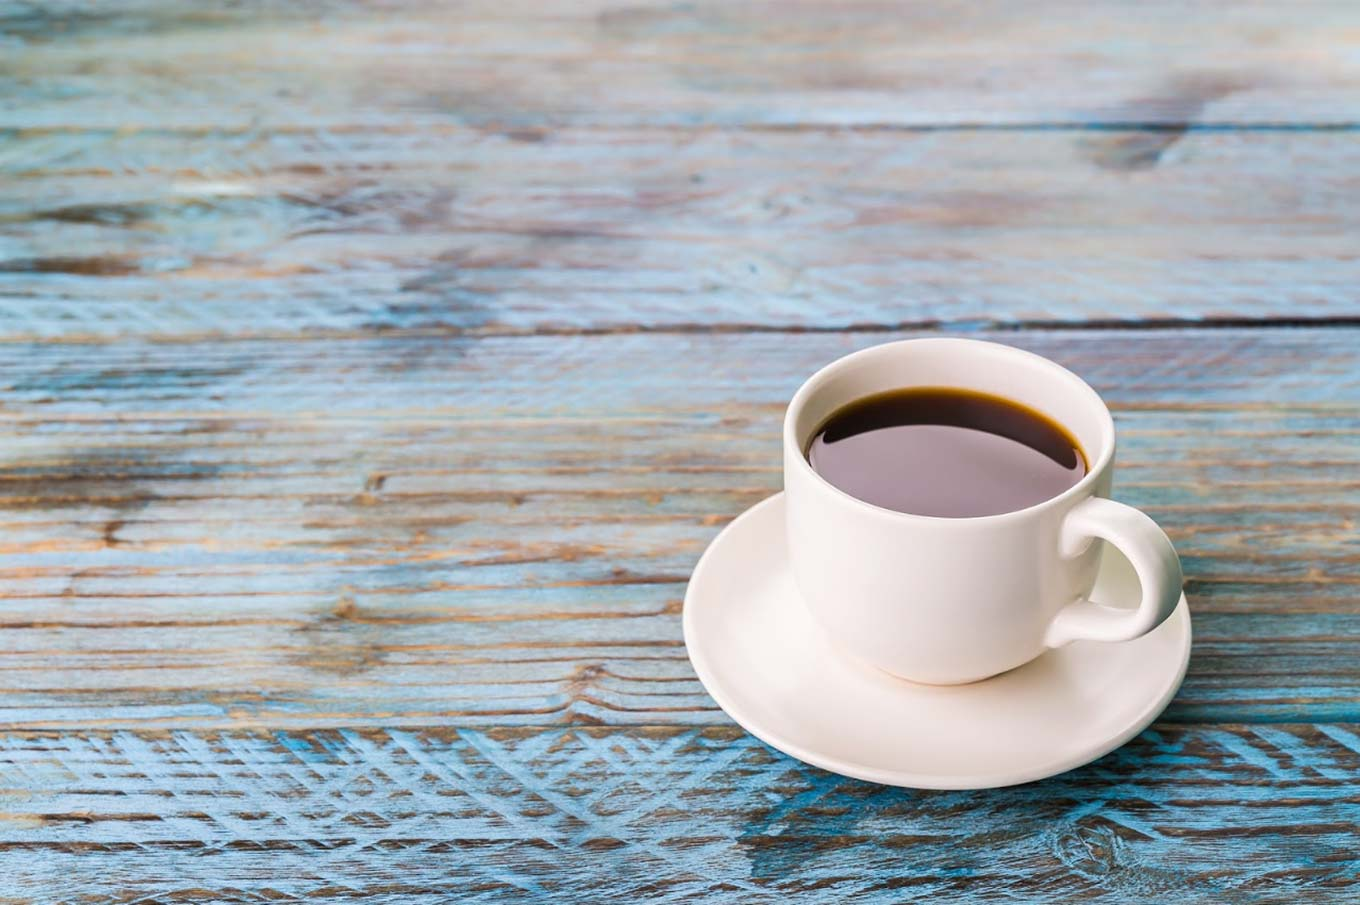 Coffee Can Help Lower Your Risk of Diabetes